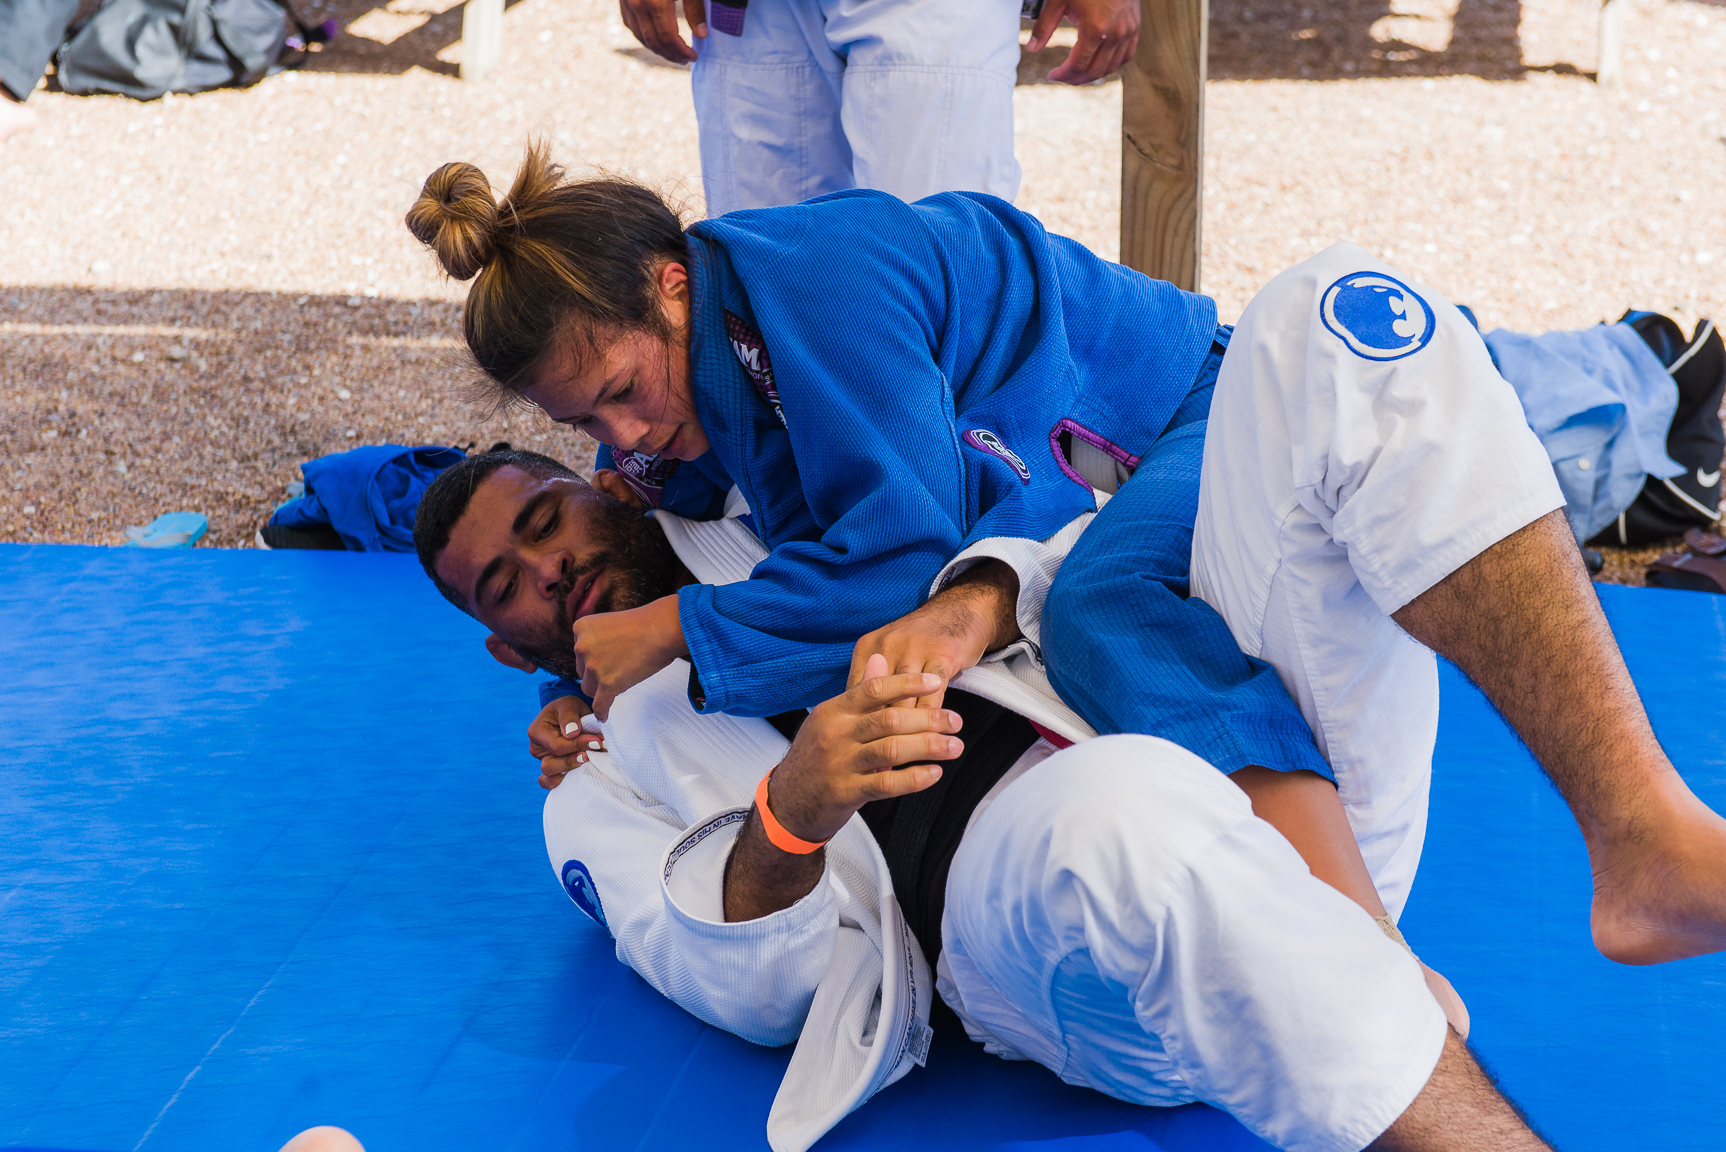 The Benefits Of Adding Customized BJJ Private Lessons To Your Training Schedule